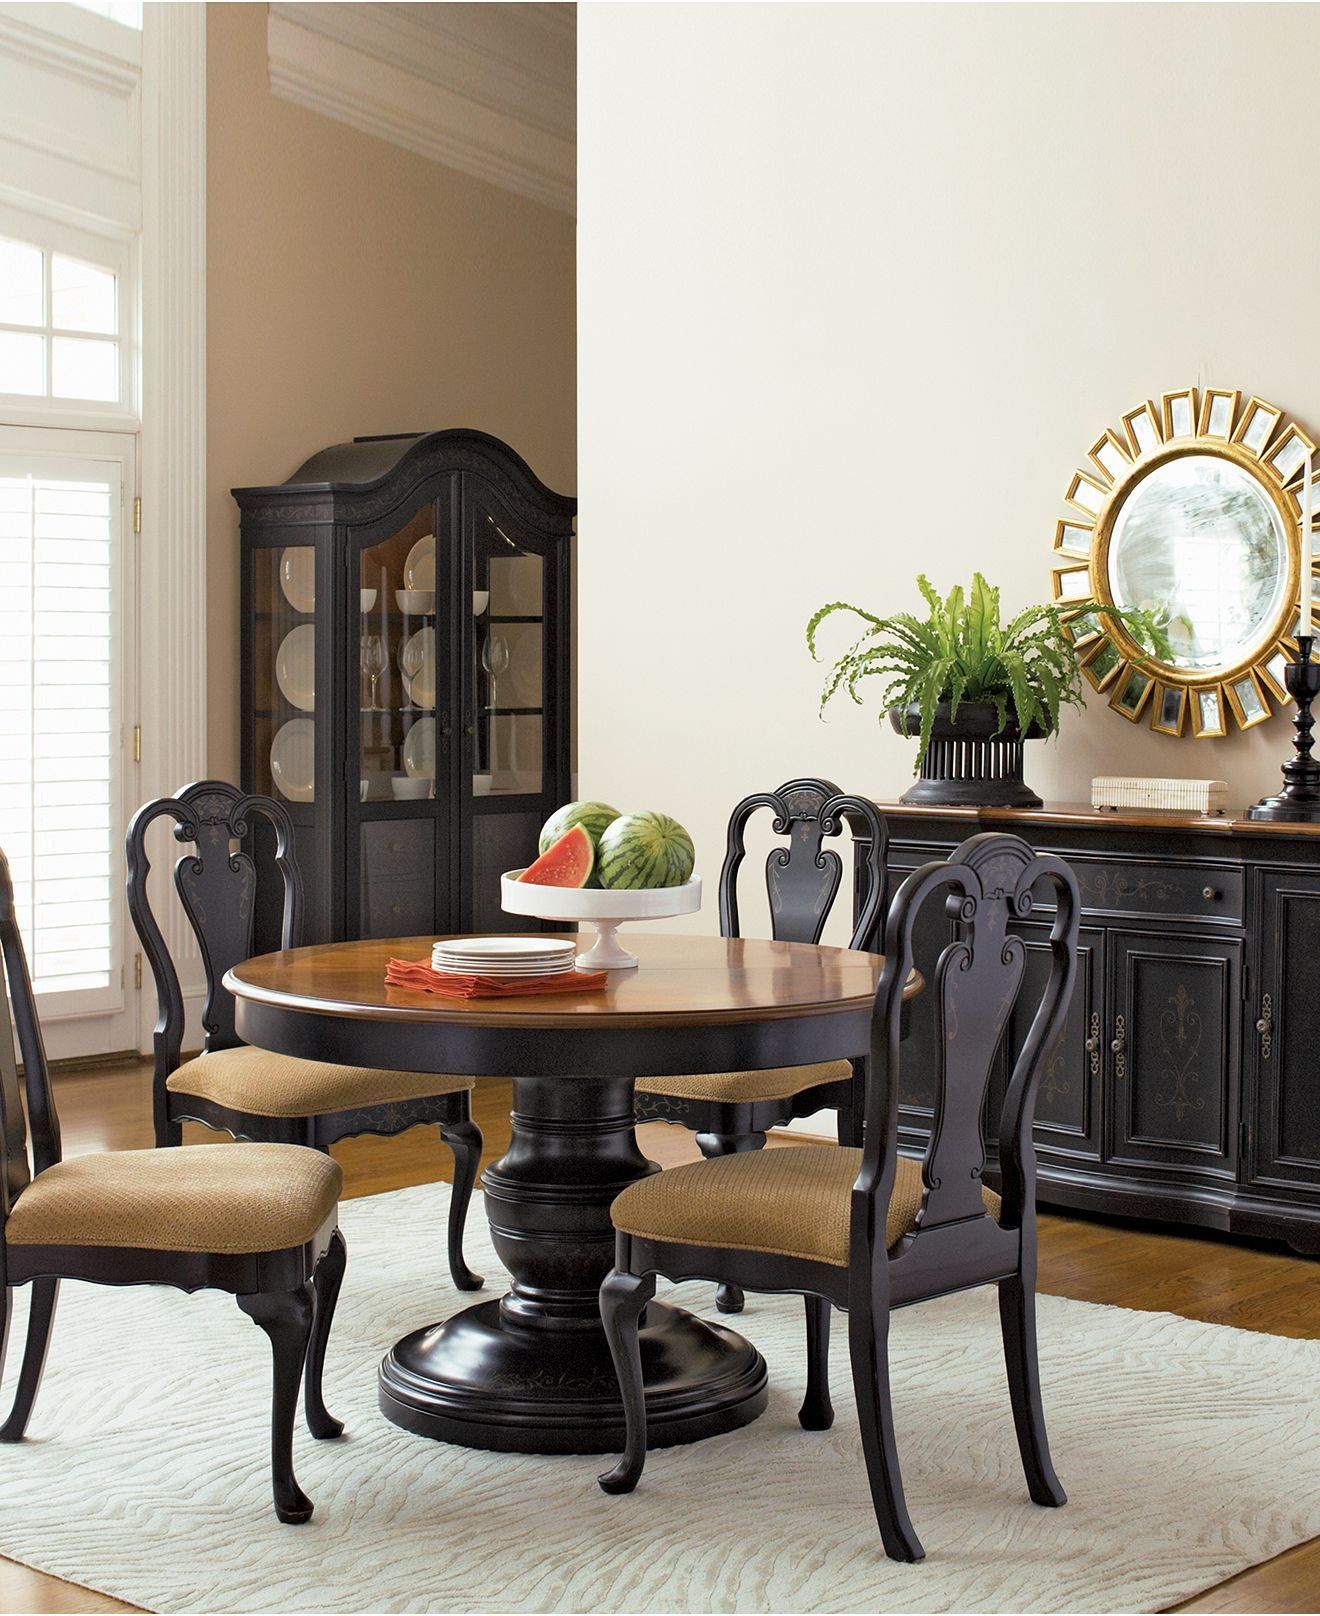 Painted Dining Room Sets: Hand-Painted Dining Room Furniture Collection